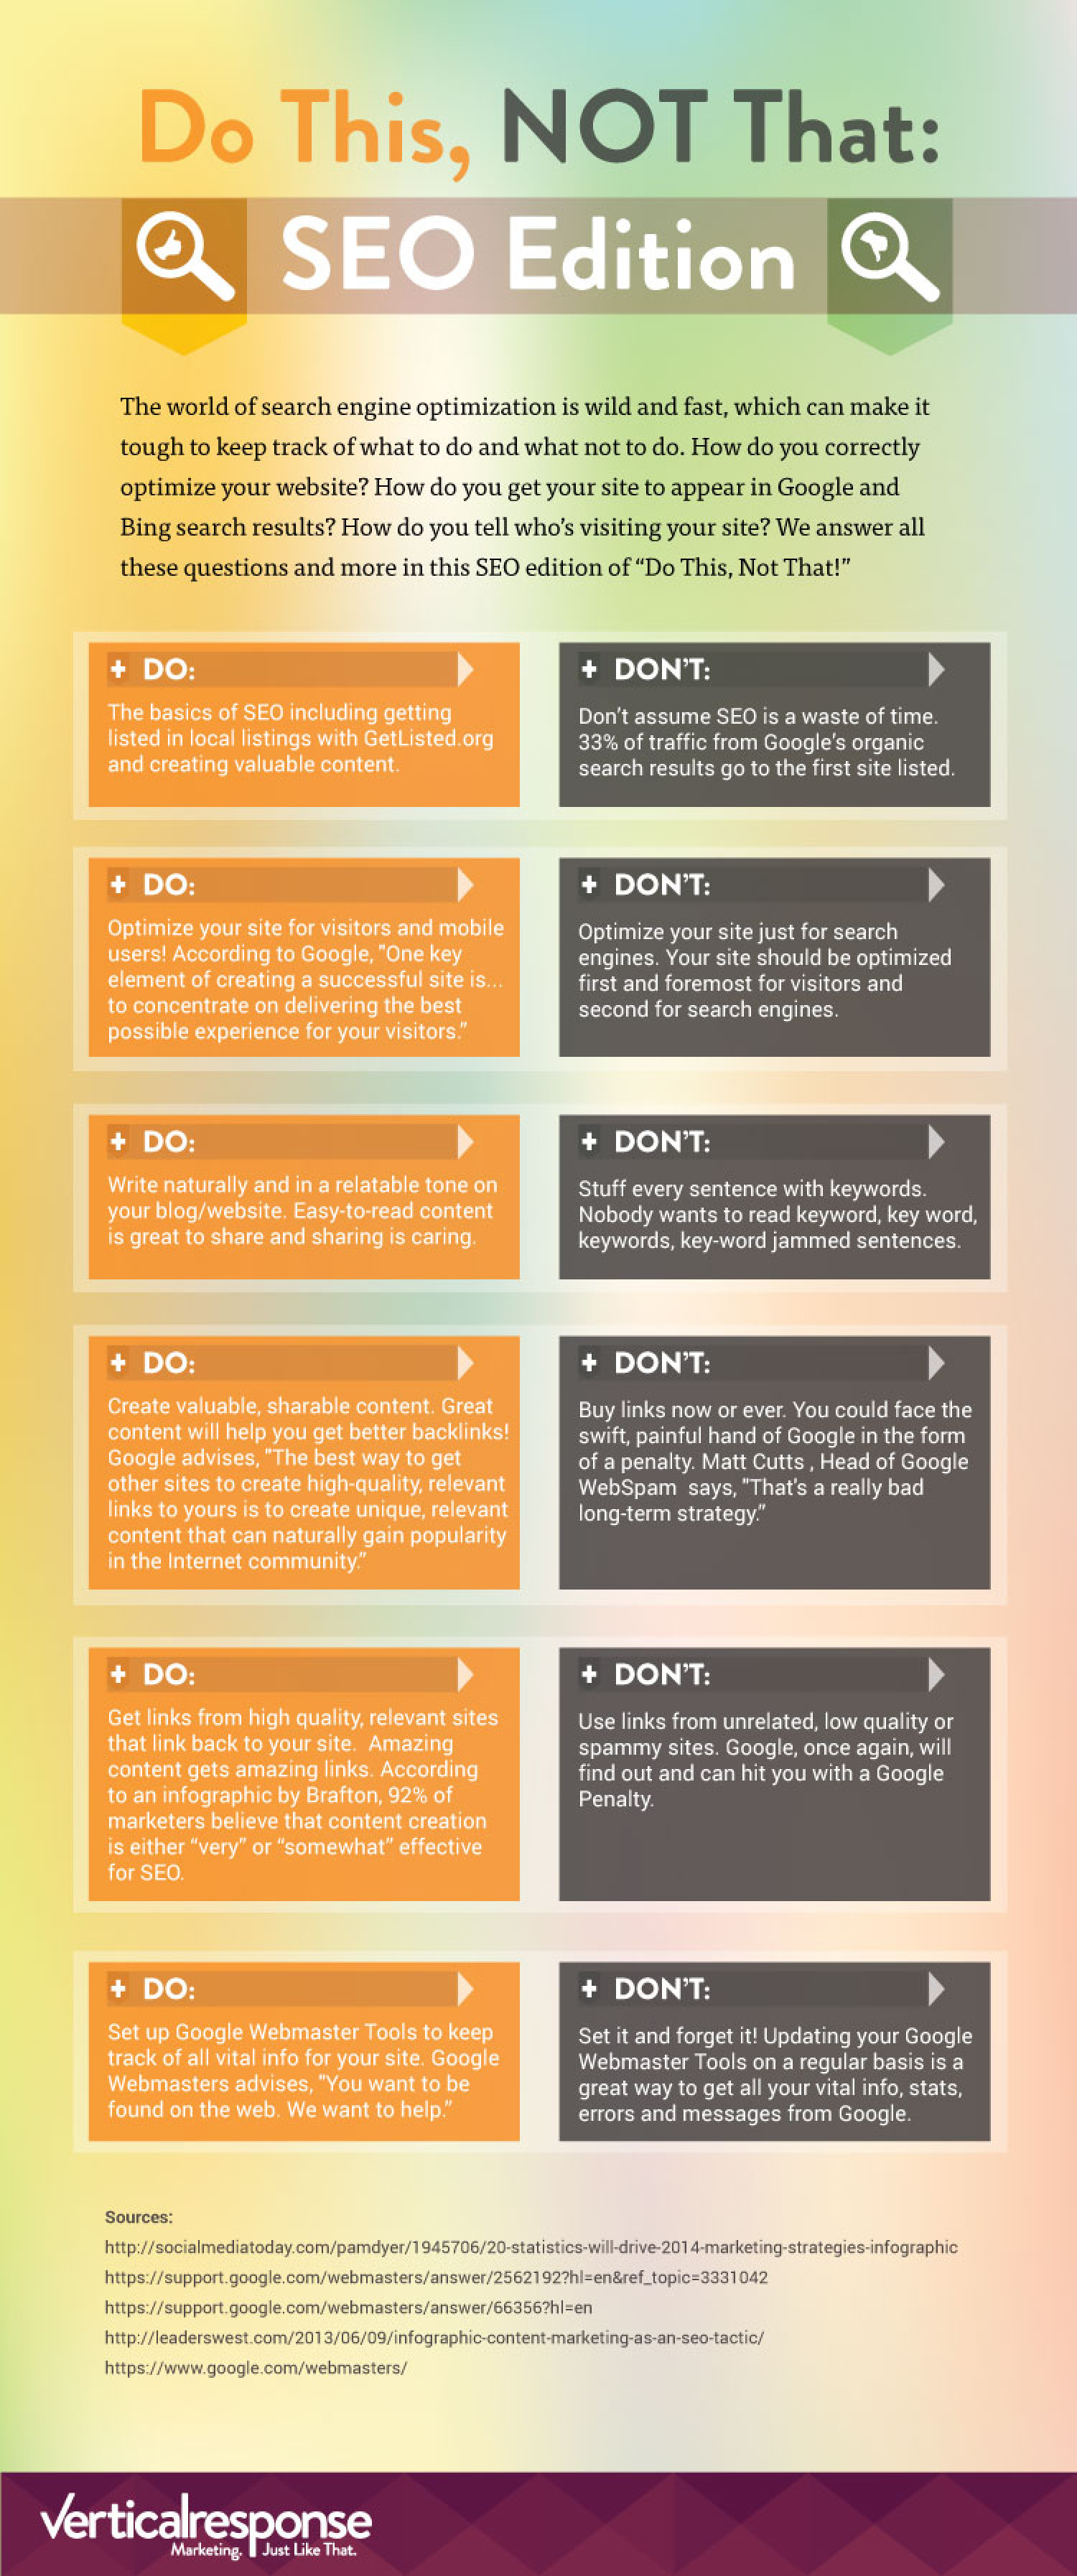 Do This, Not That - SEO Edition Infographic